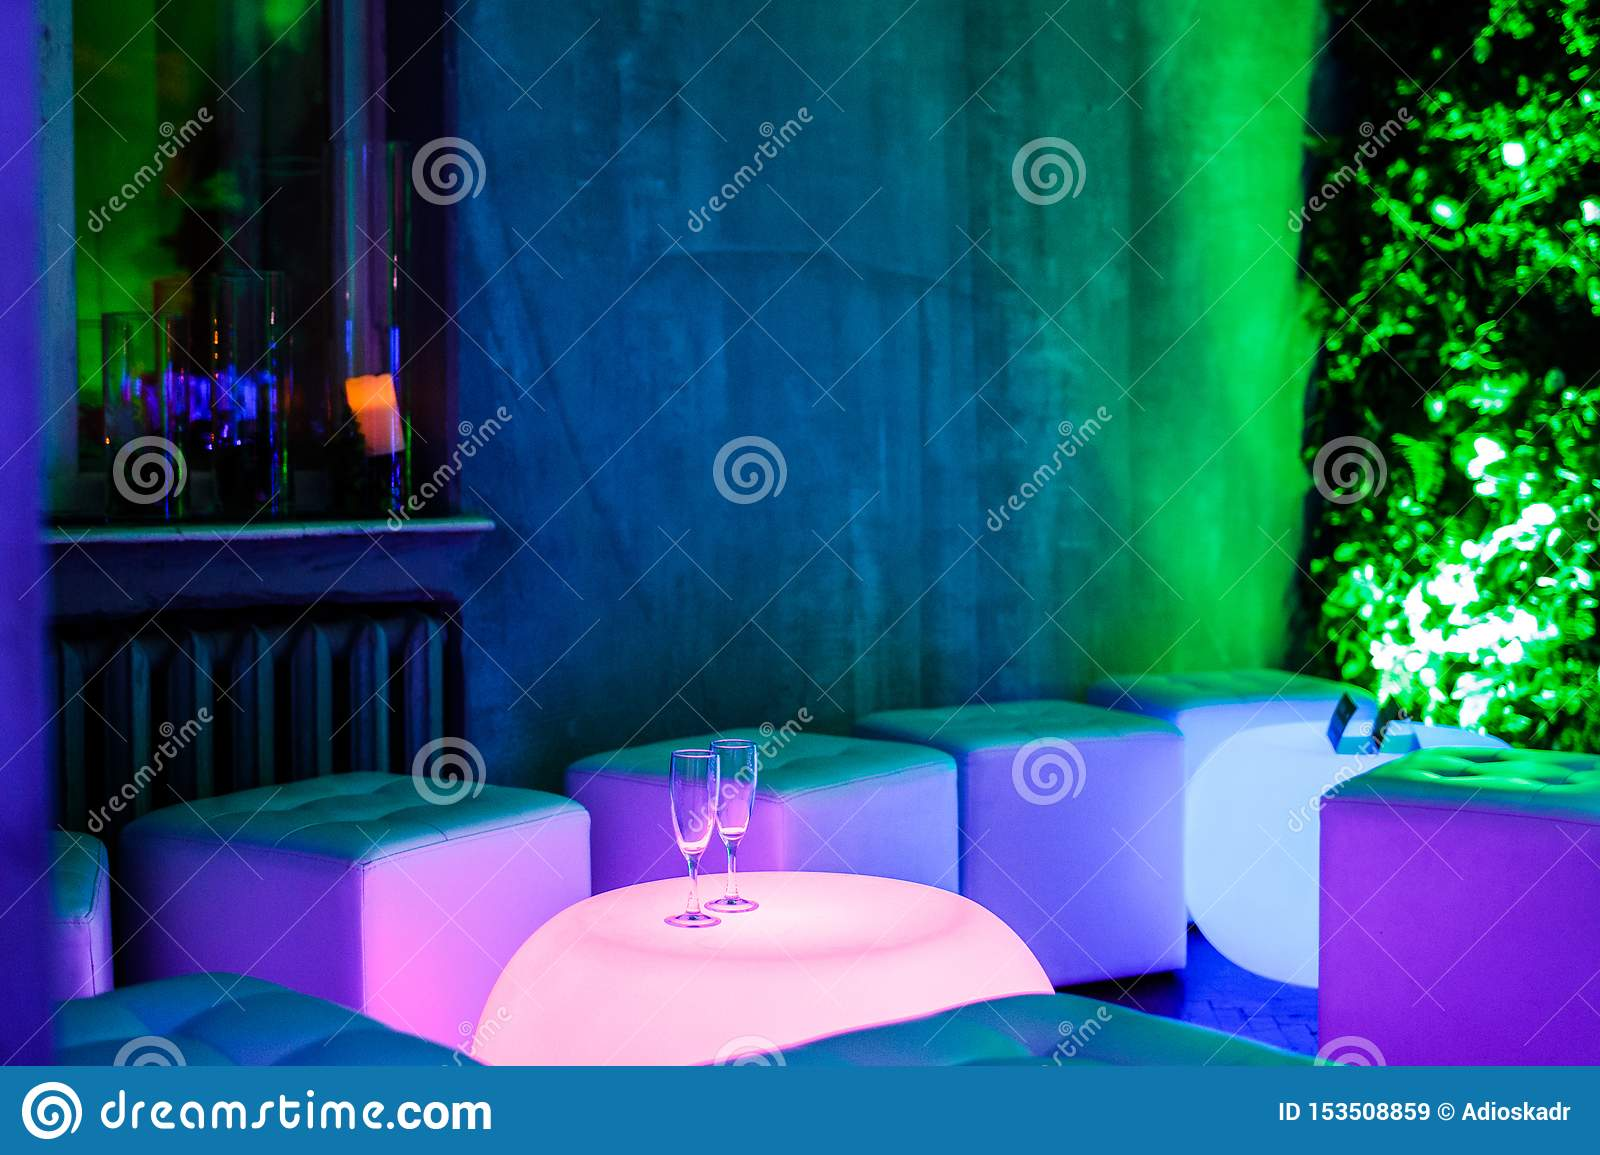 The interior of the room at the party